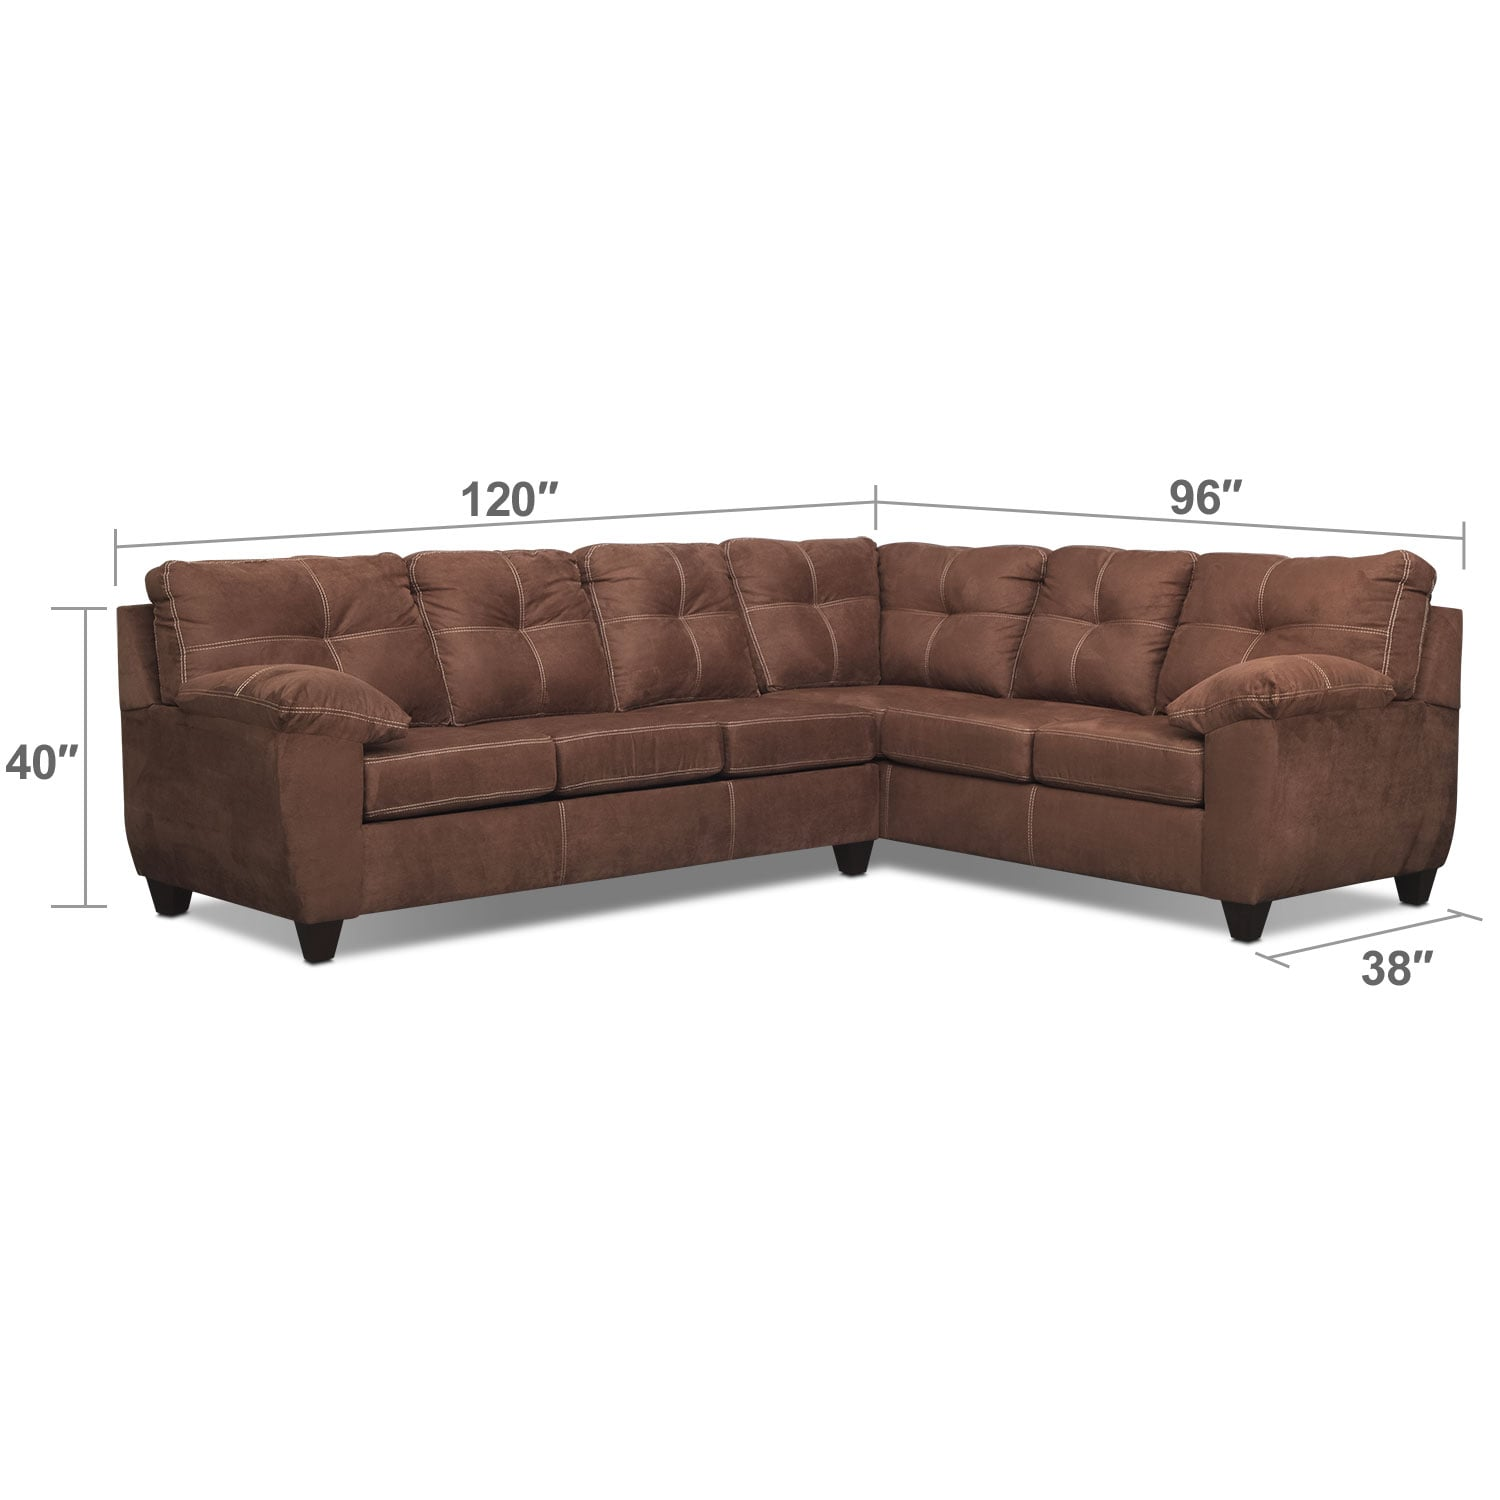 Living Room Furniture - Rialto Coffee 2 Pc. Sectional with Right-Facing Sofa